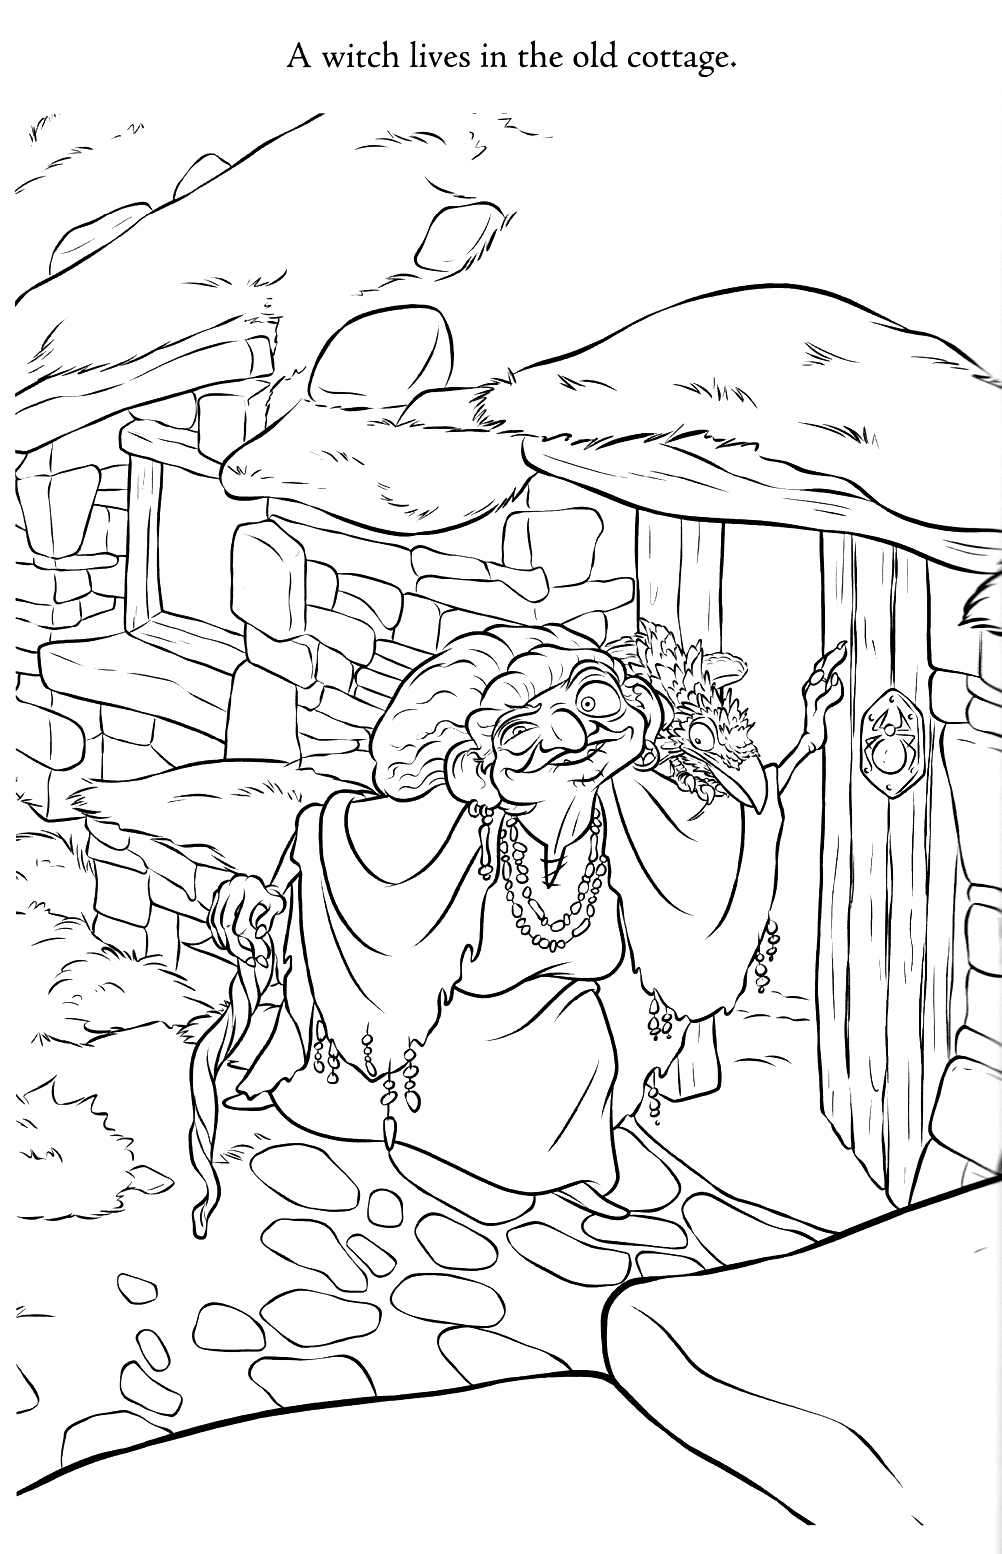 Disney Brave Coloring Pages - Coloring Home | 1554x1002